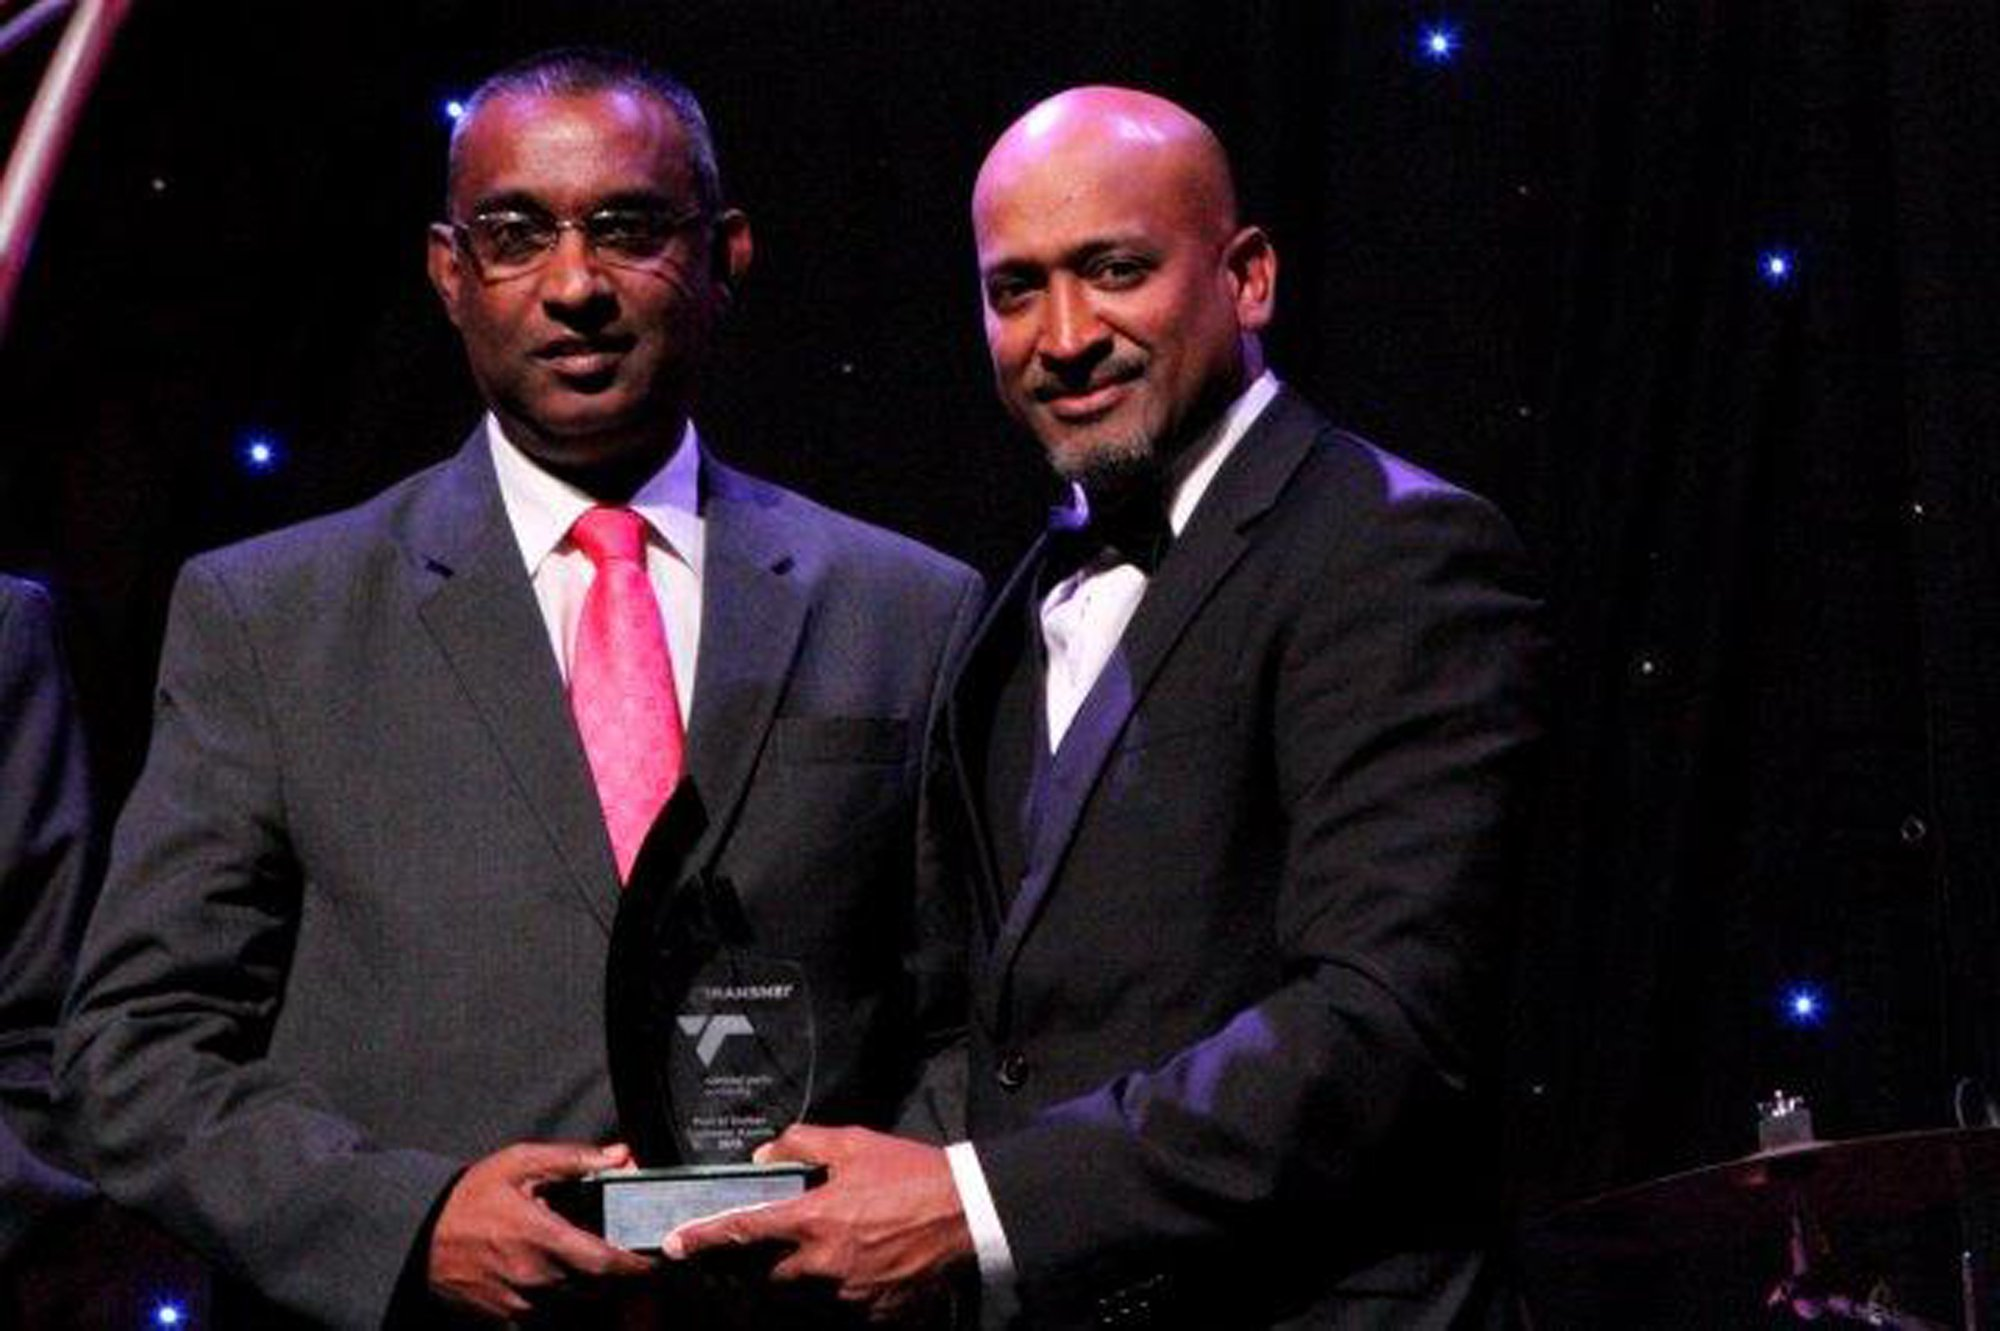 Ivan Pillay accepting the award from Richard Vallihu